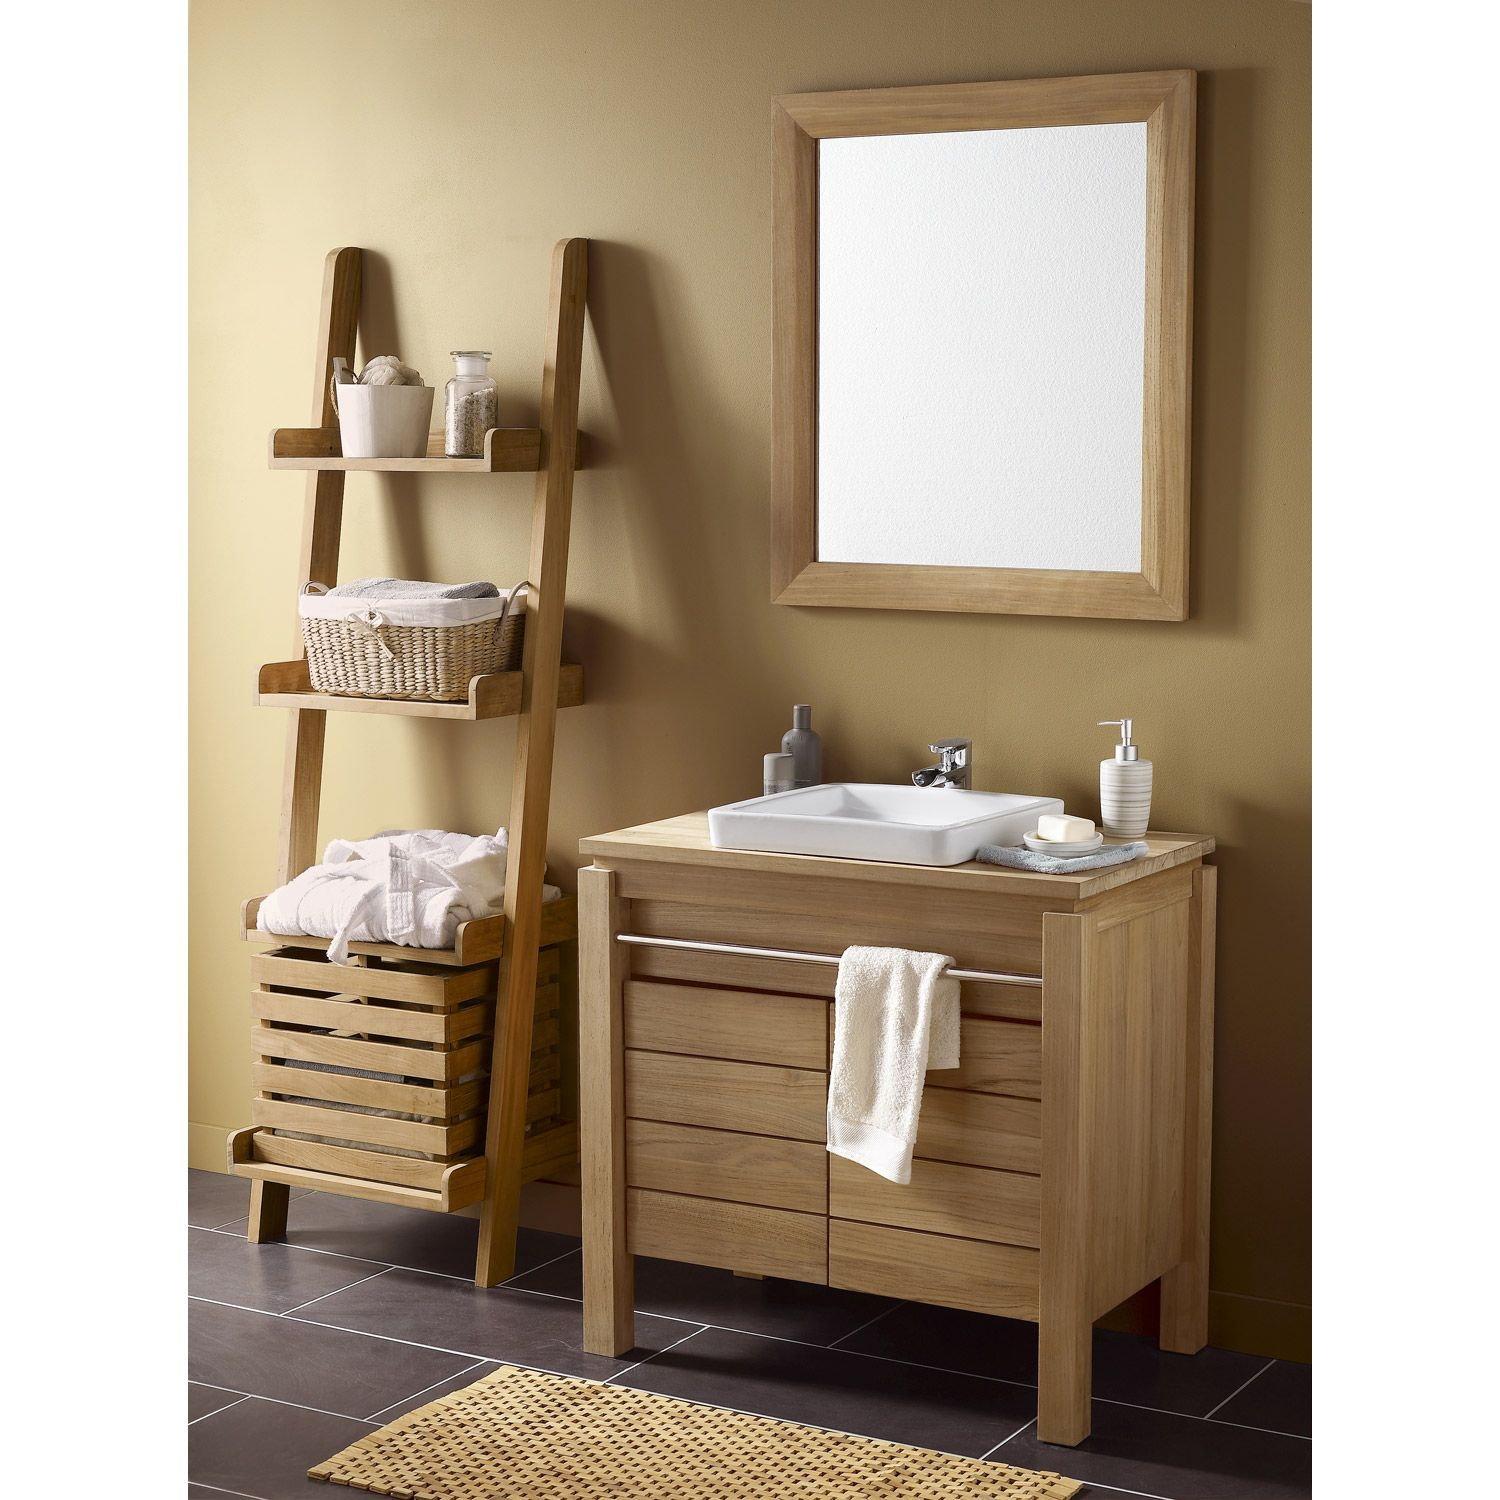 Meuble Salle De Bain Bois Leroy Merlin Bathroom Sink Units Rustic Bathroom Shelves Amazing Bathrooms